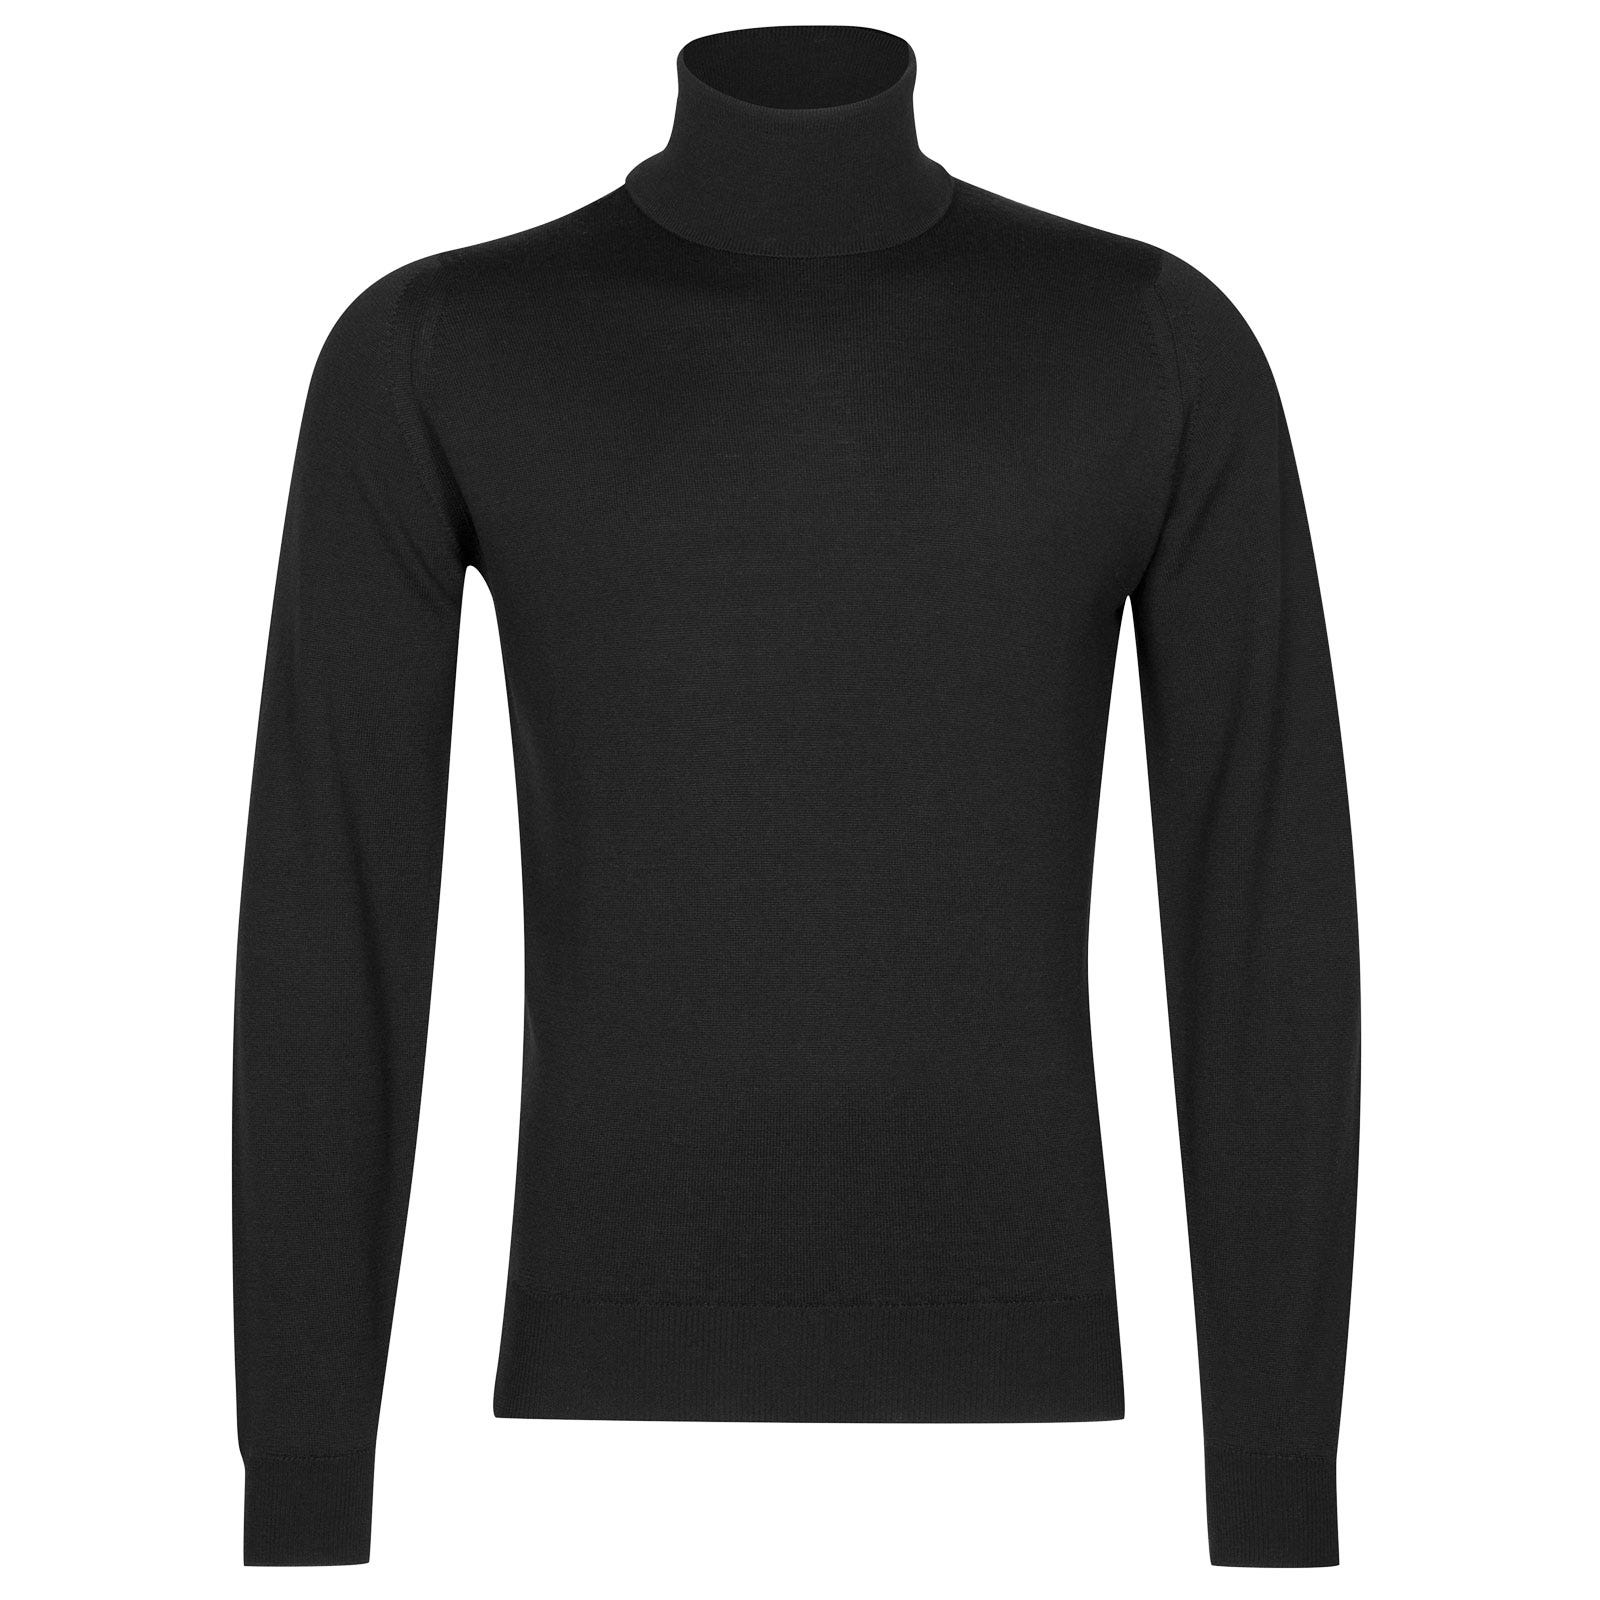 John Smedley Connell Merino Wool Pullover in Black-XL